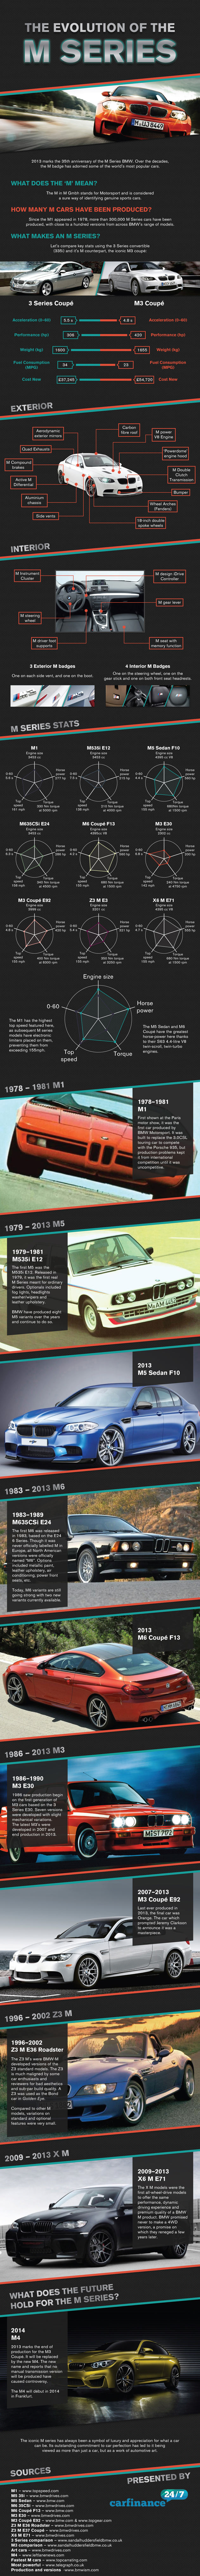 BMW M Series History-Infographic